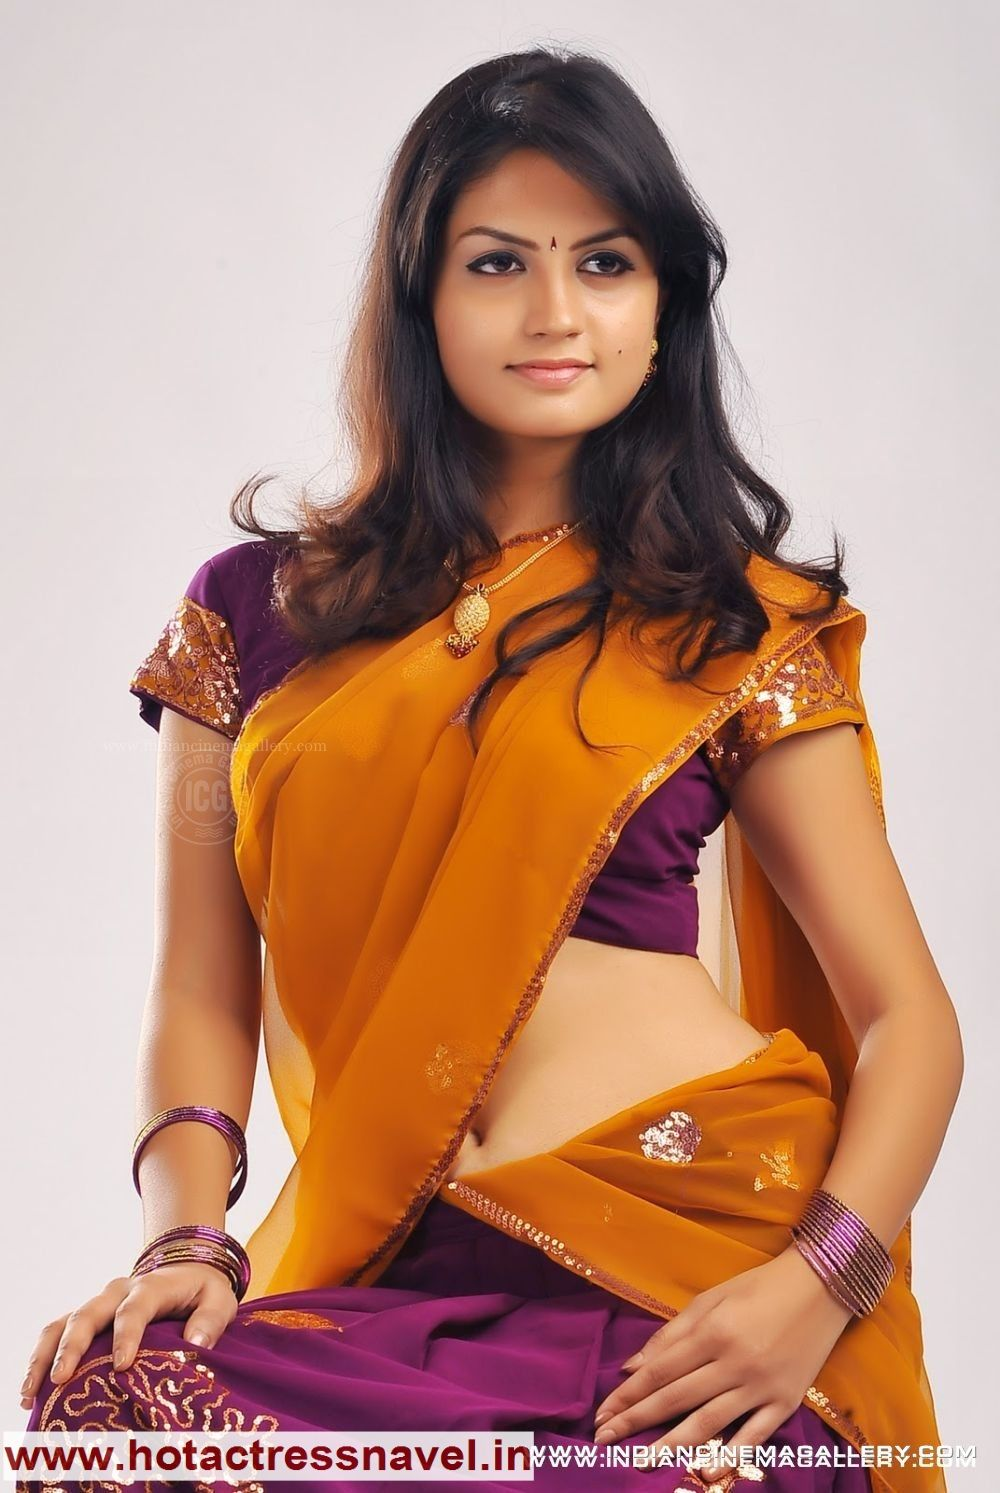 indian actress madhulika hot navel, cleavage, bareback pics in sari